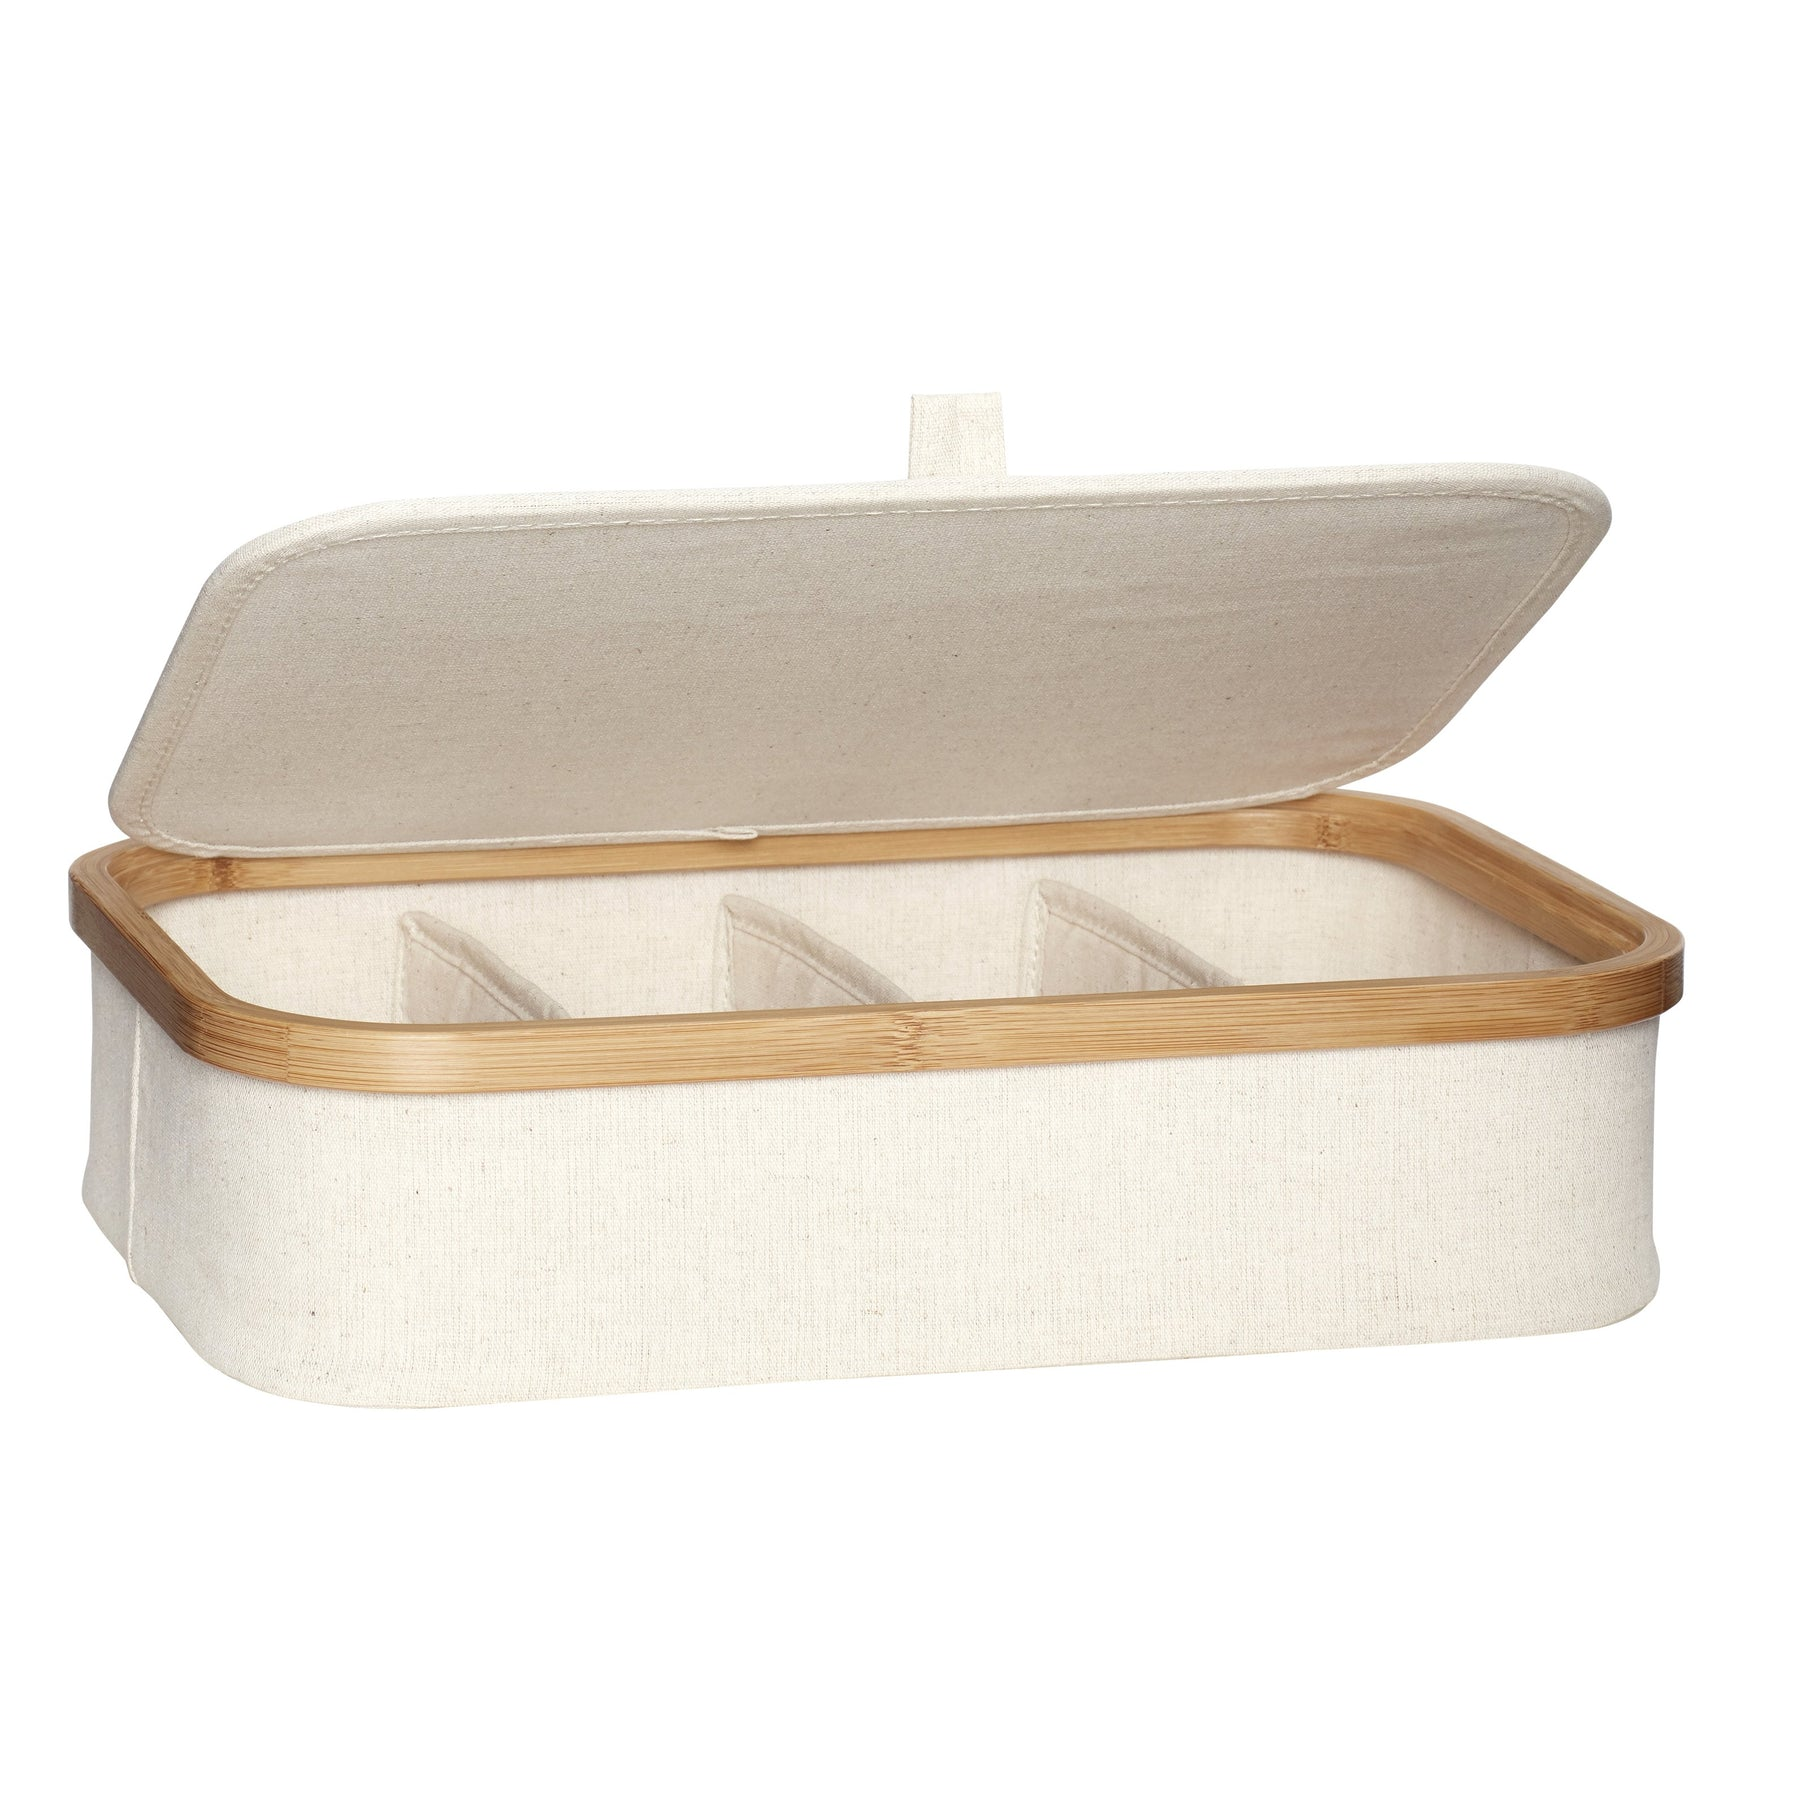 Picture of: Opbevaringskasse M Lag Canvas Bambus Beige Natur S 2 Alma Home